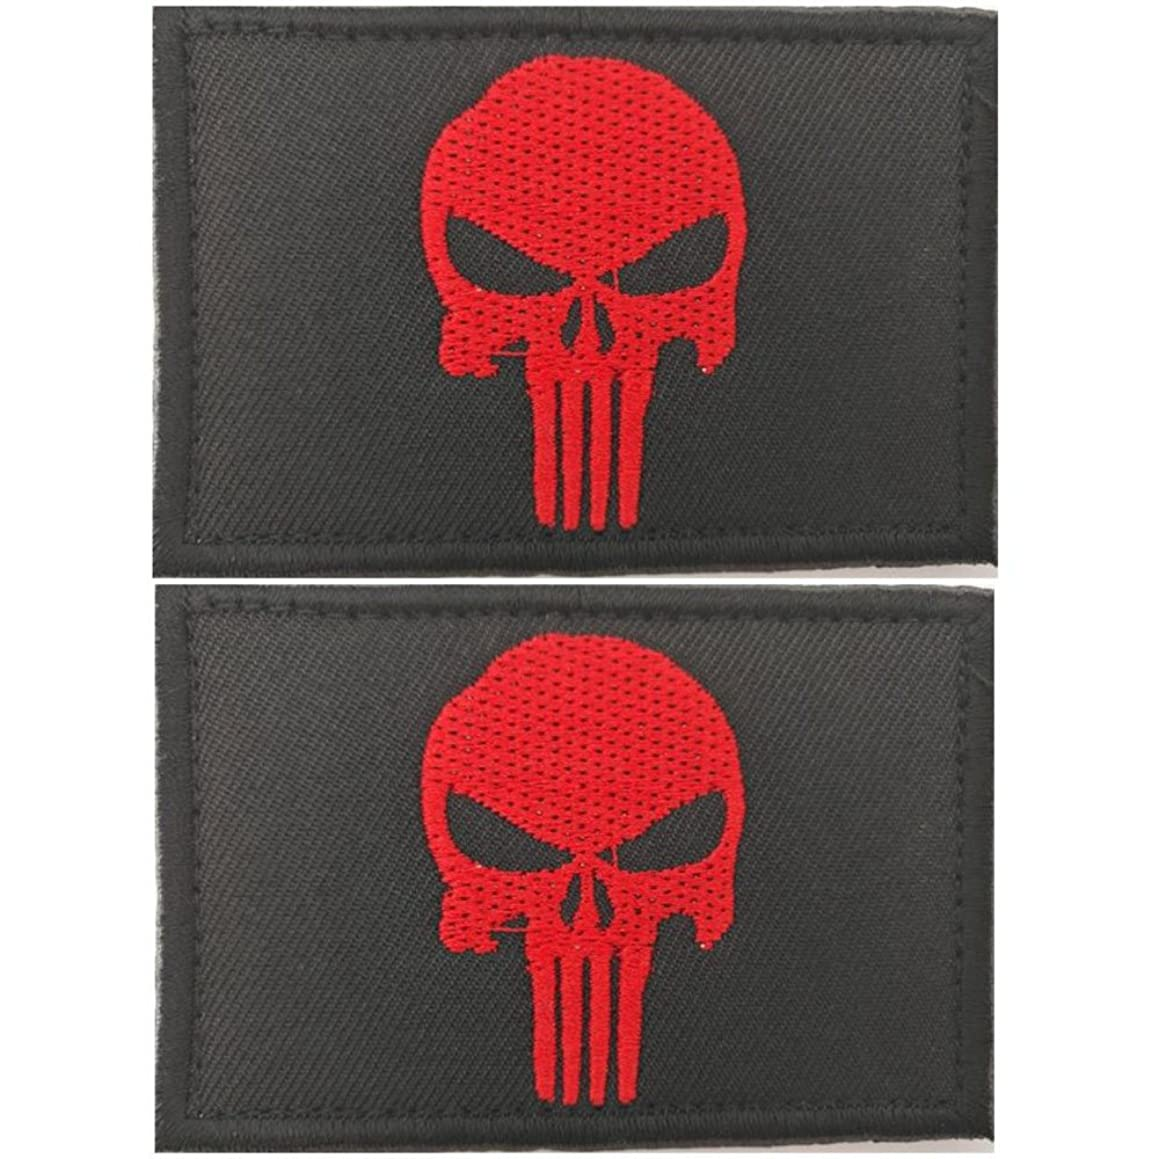 Bundle 2 pieces - Punisher Skull with Velcro backing Decorative Embroidered Badge appliques (Color 3)